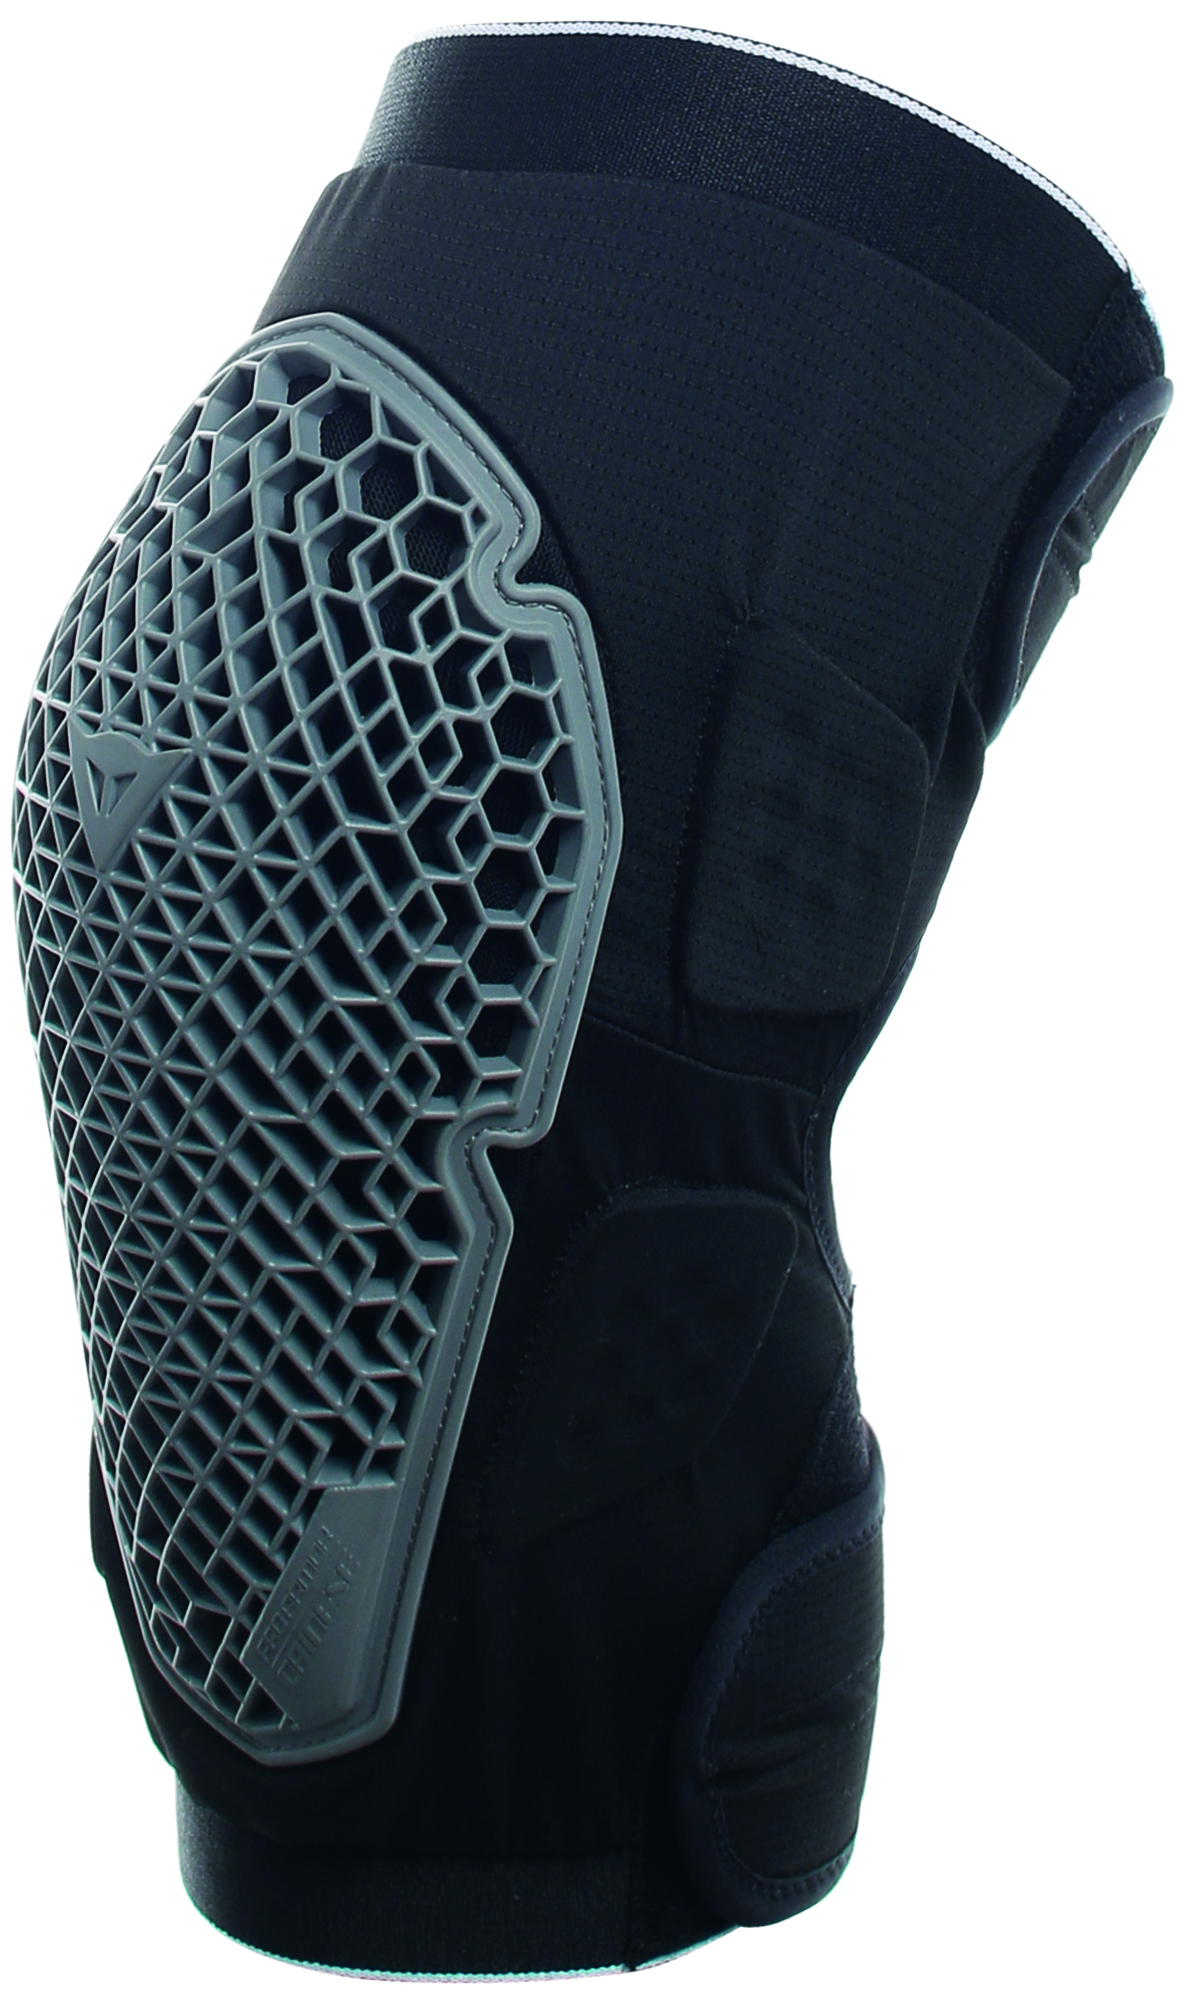 Dainese Наколенники Dainese Pro Armor Knee Guard